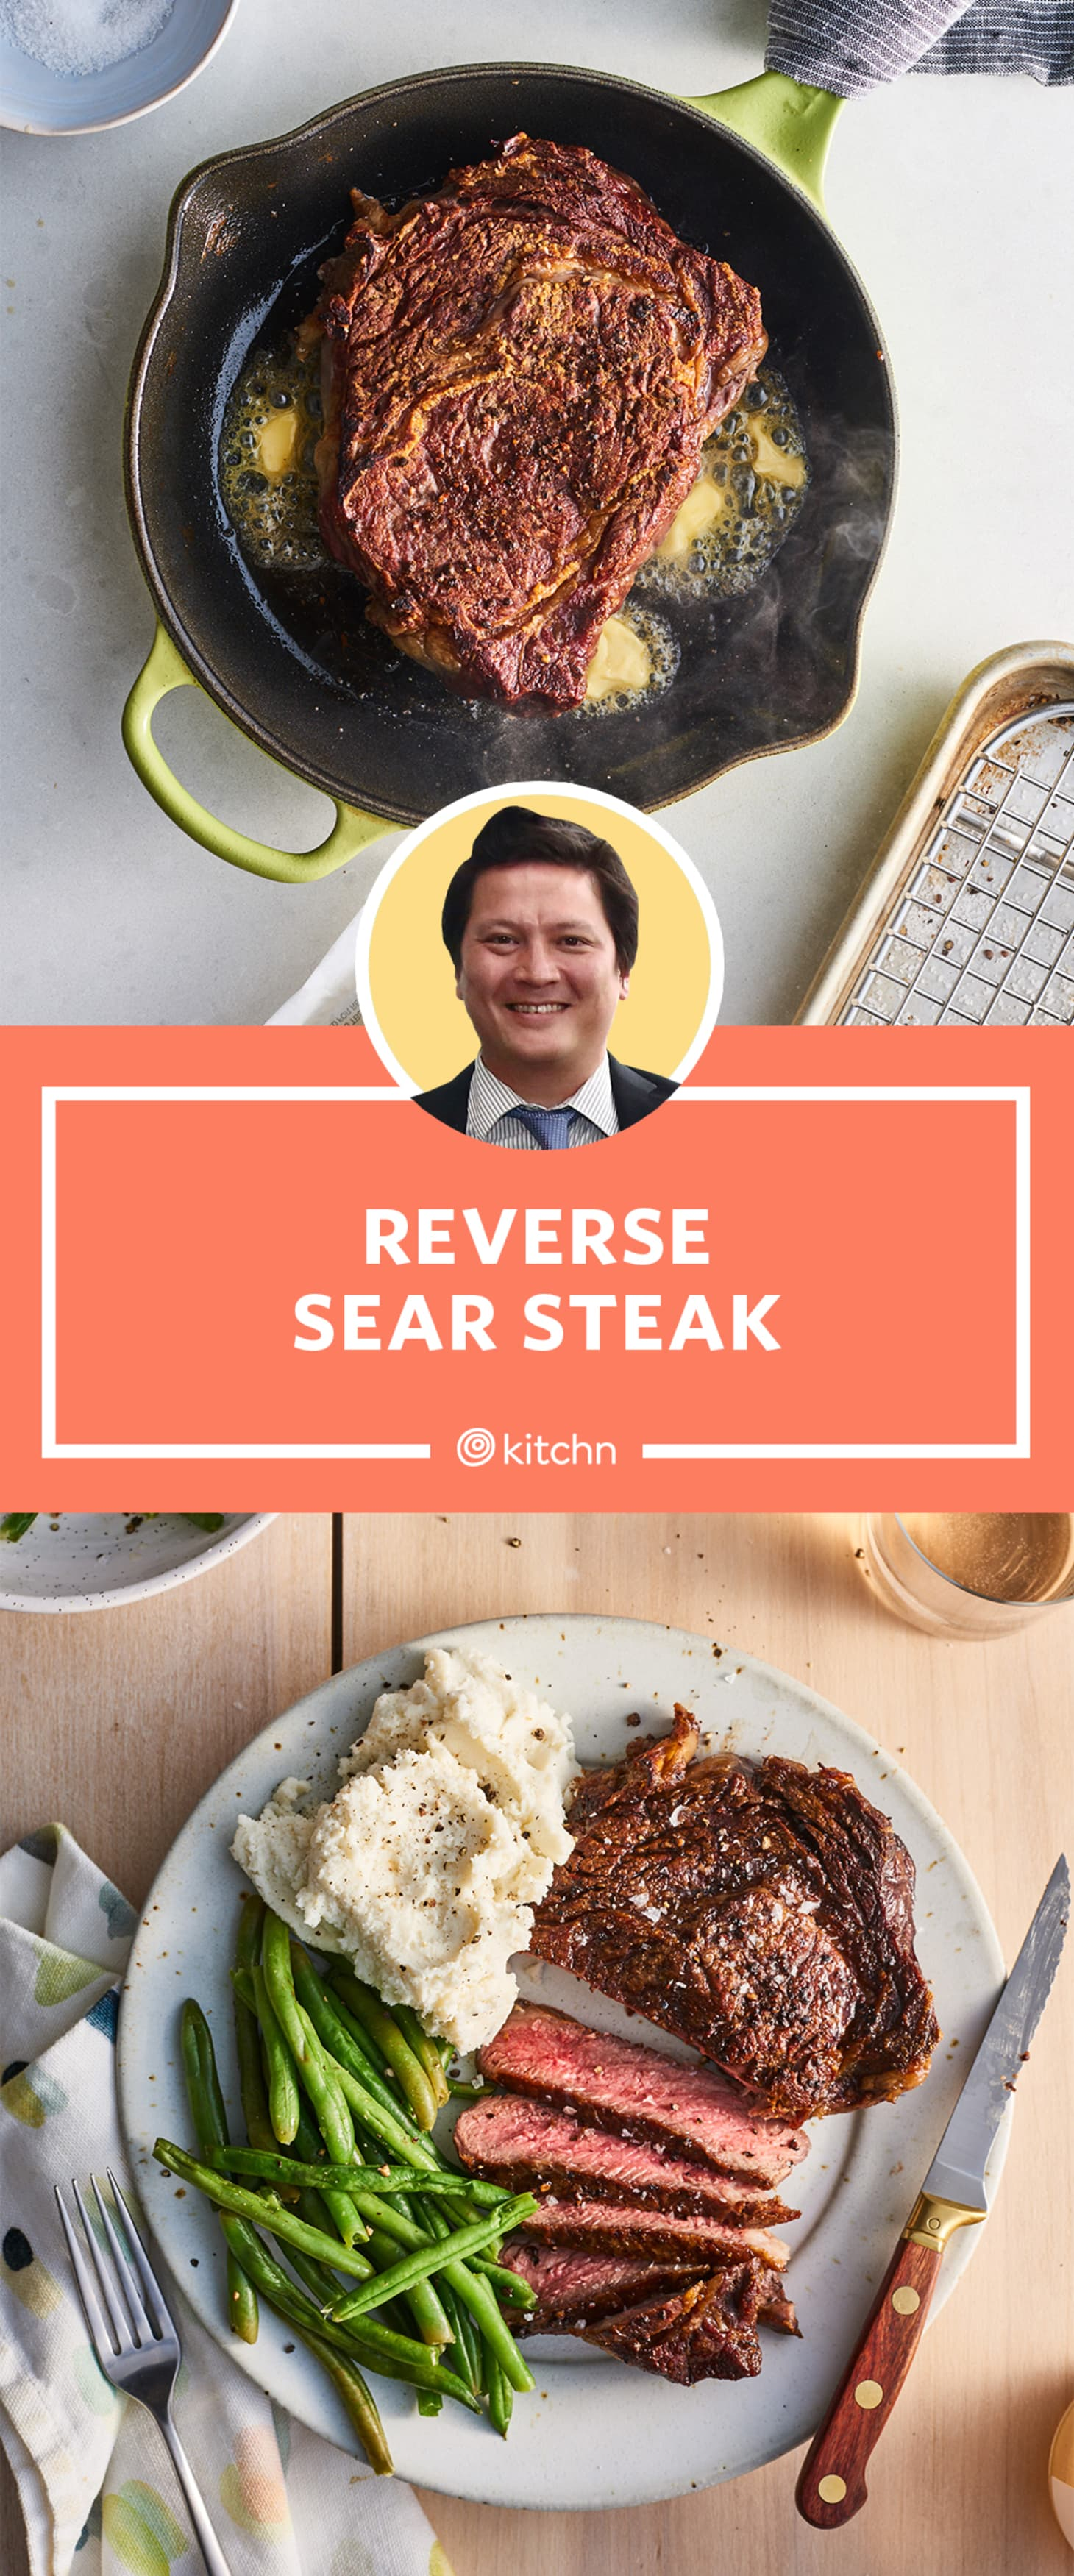 How To Reverse Sear Steak - The Best Method To Cook Steak